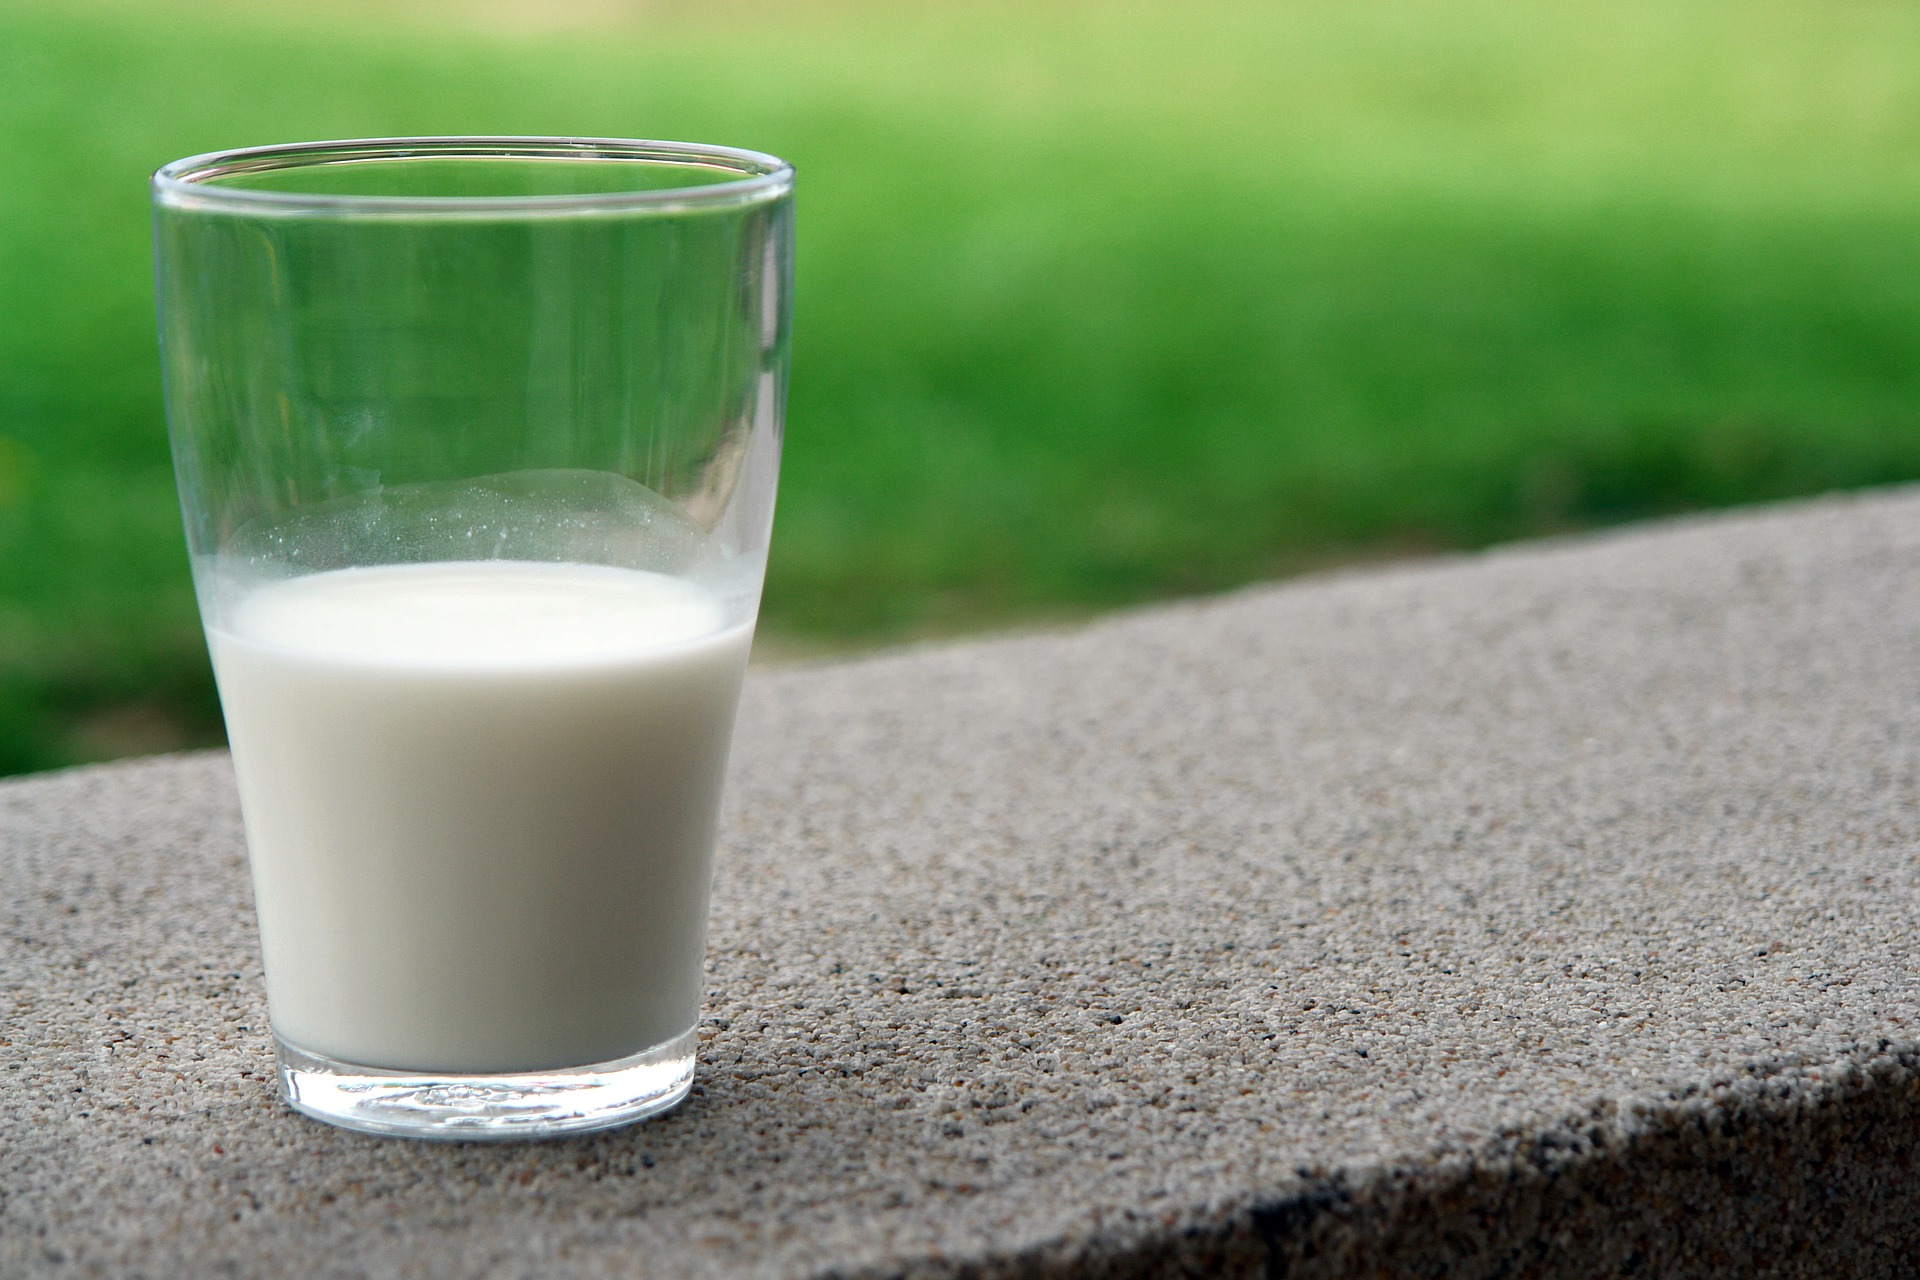 a half full glass of milk sitting on an outdoor wall